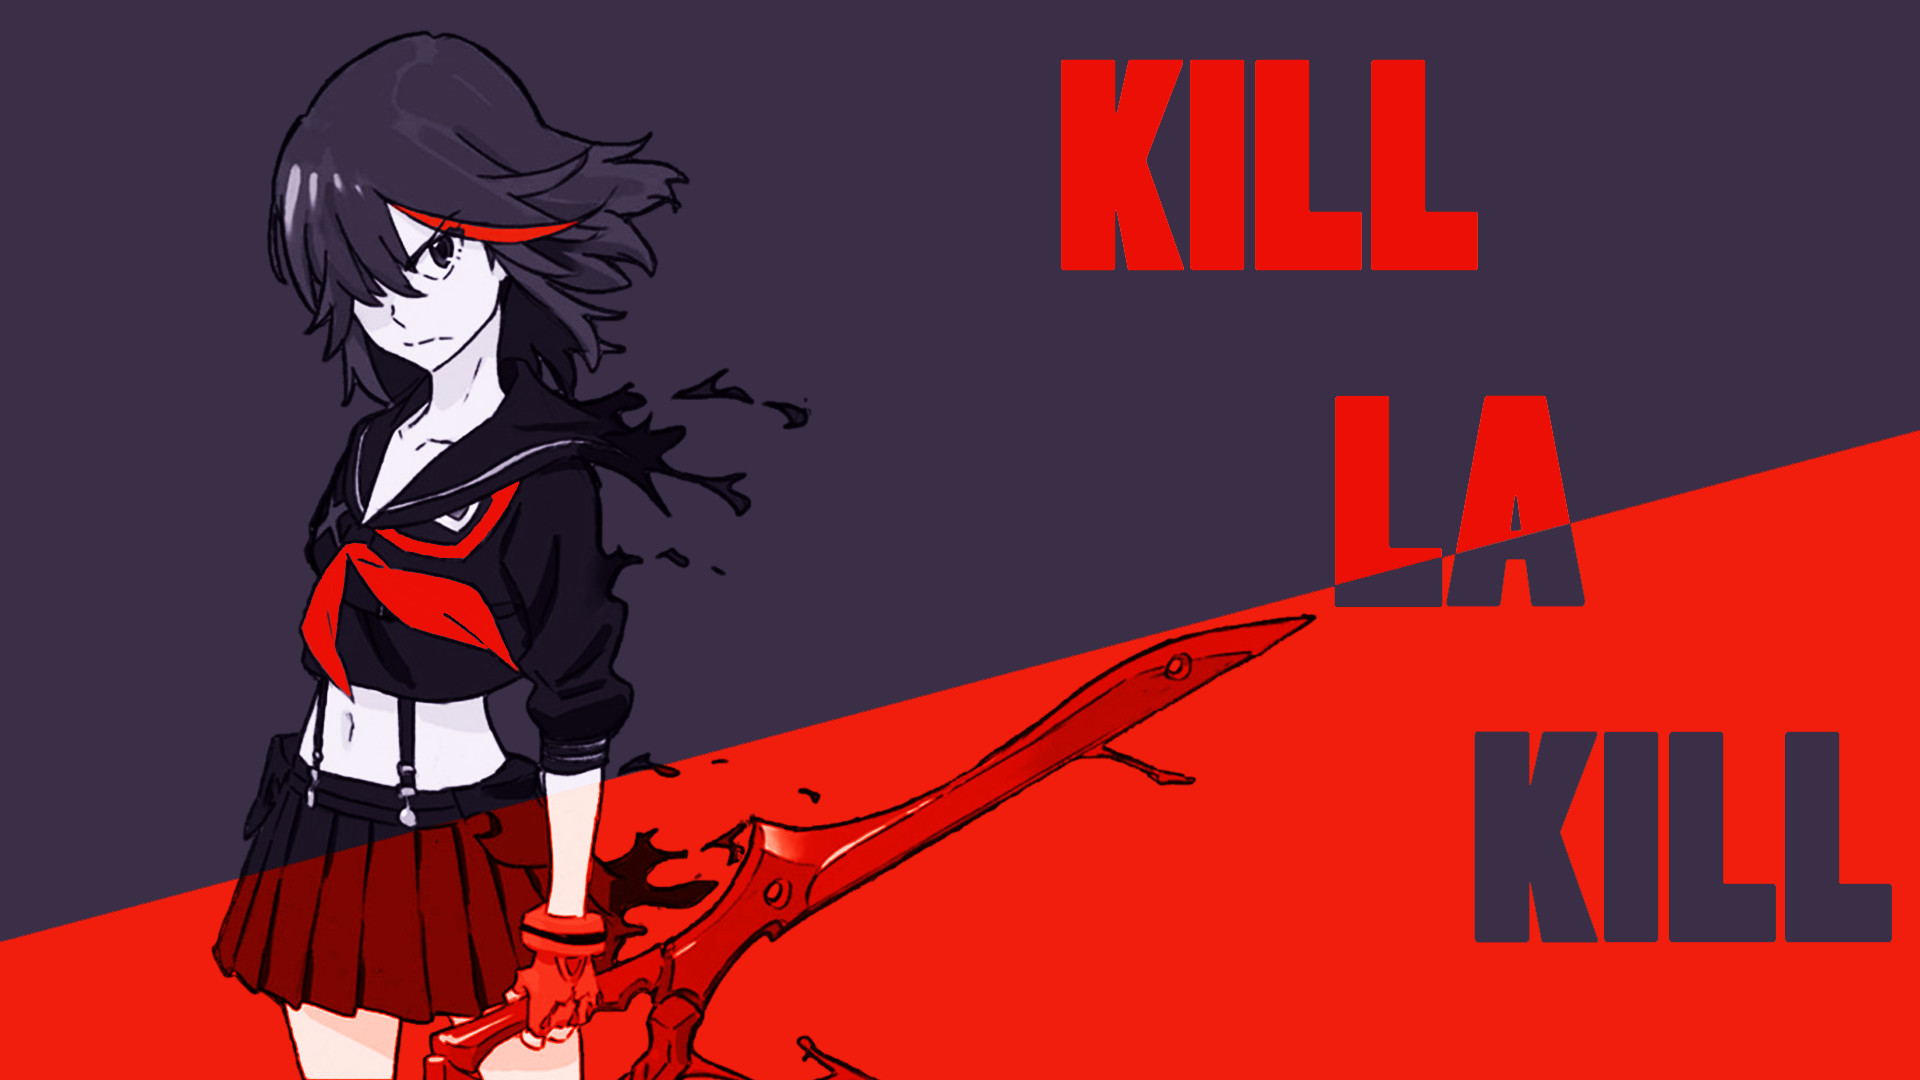 Kill La Kill Wallpaper 1366x768 62 Images